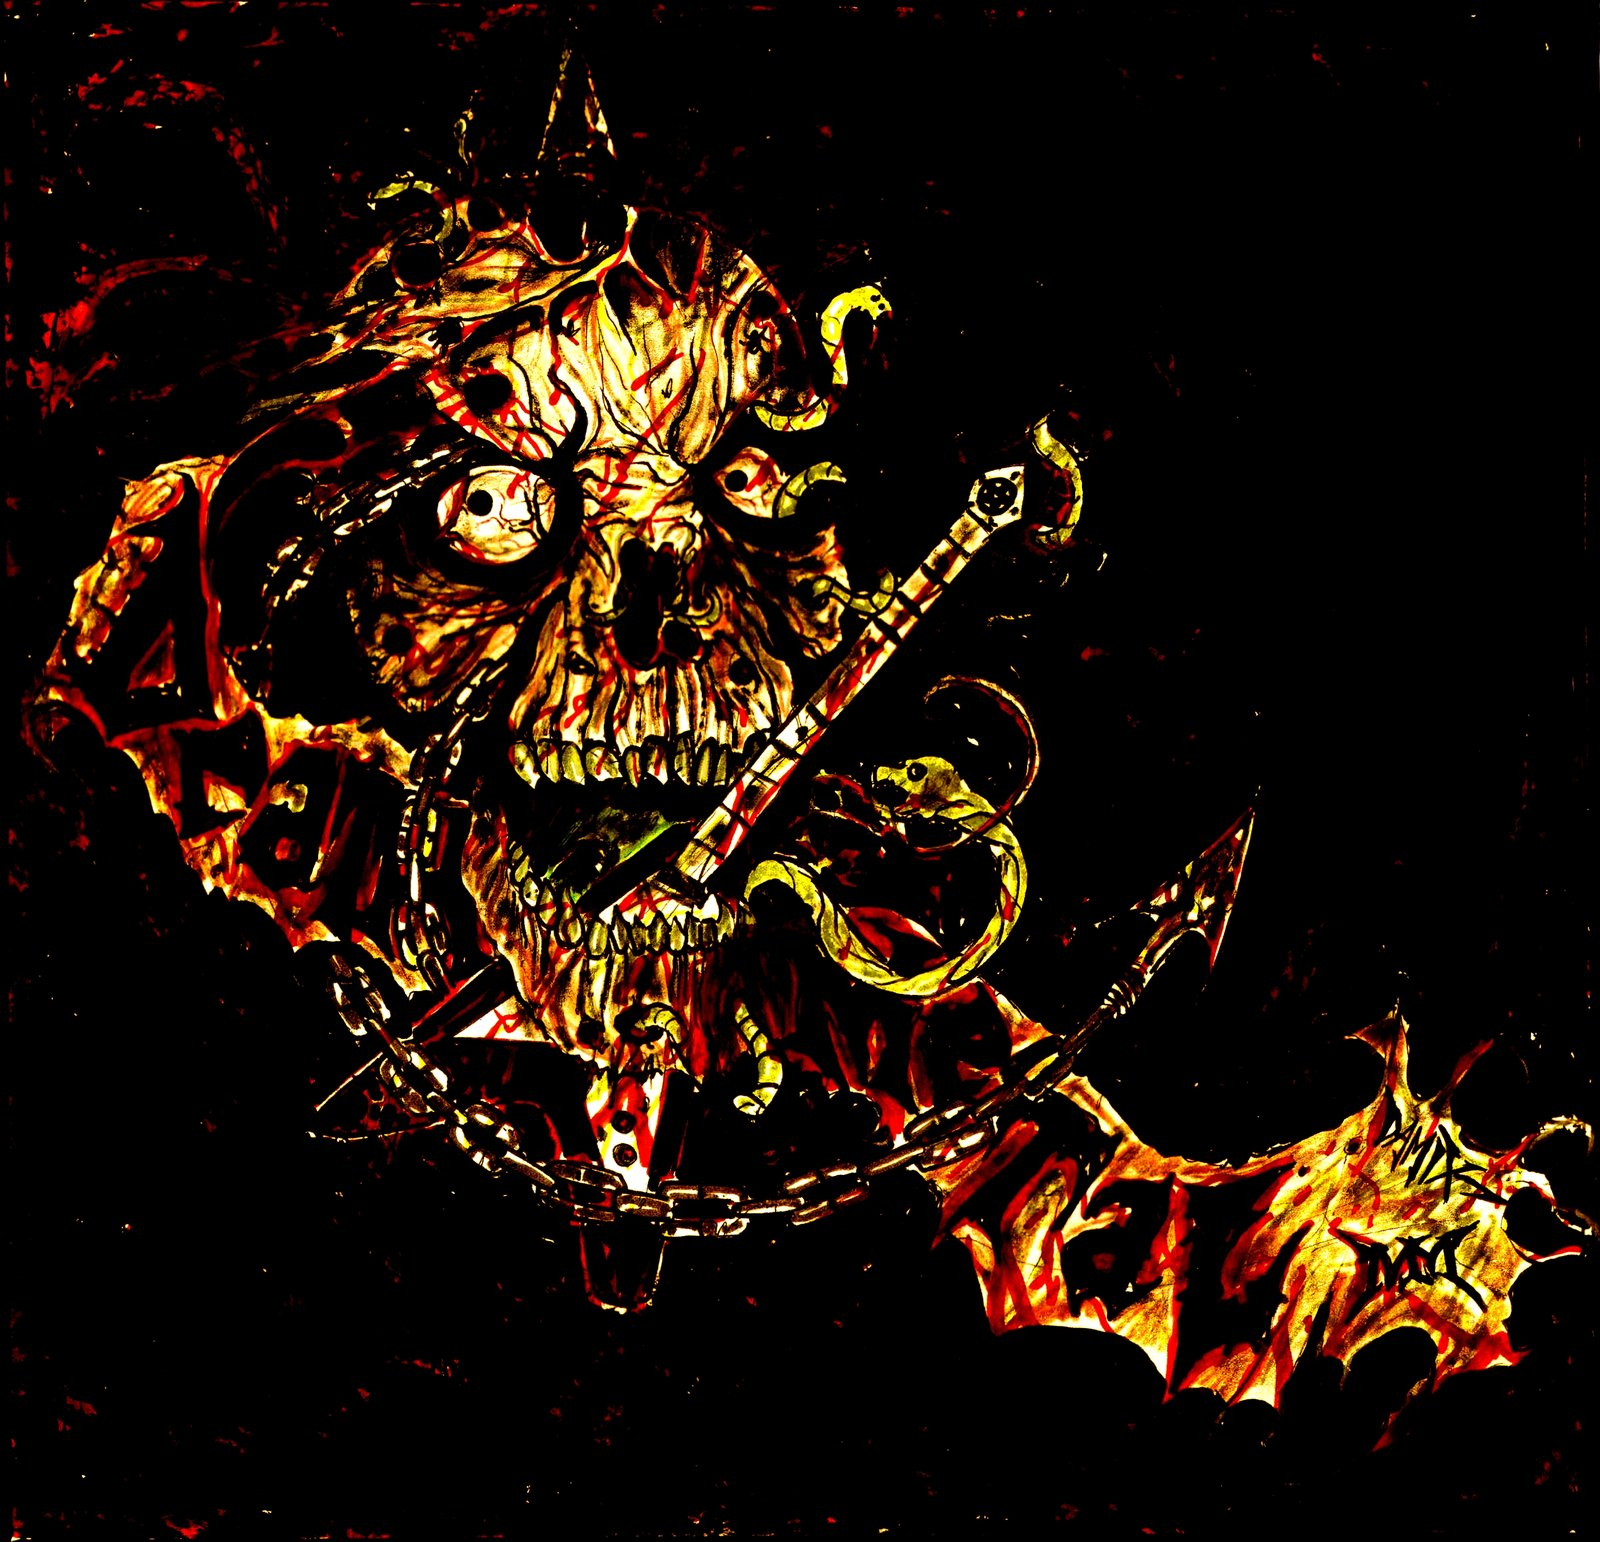 Death Metal Art Wallpaper | www.pixshark.com - Images ...